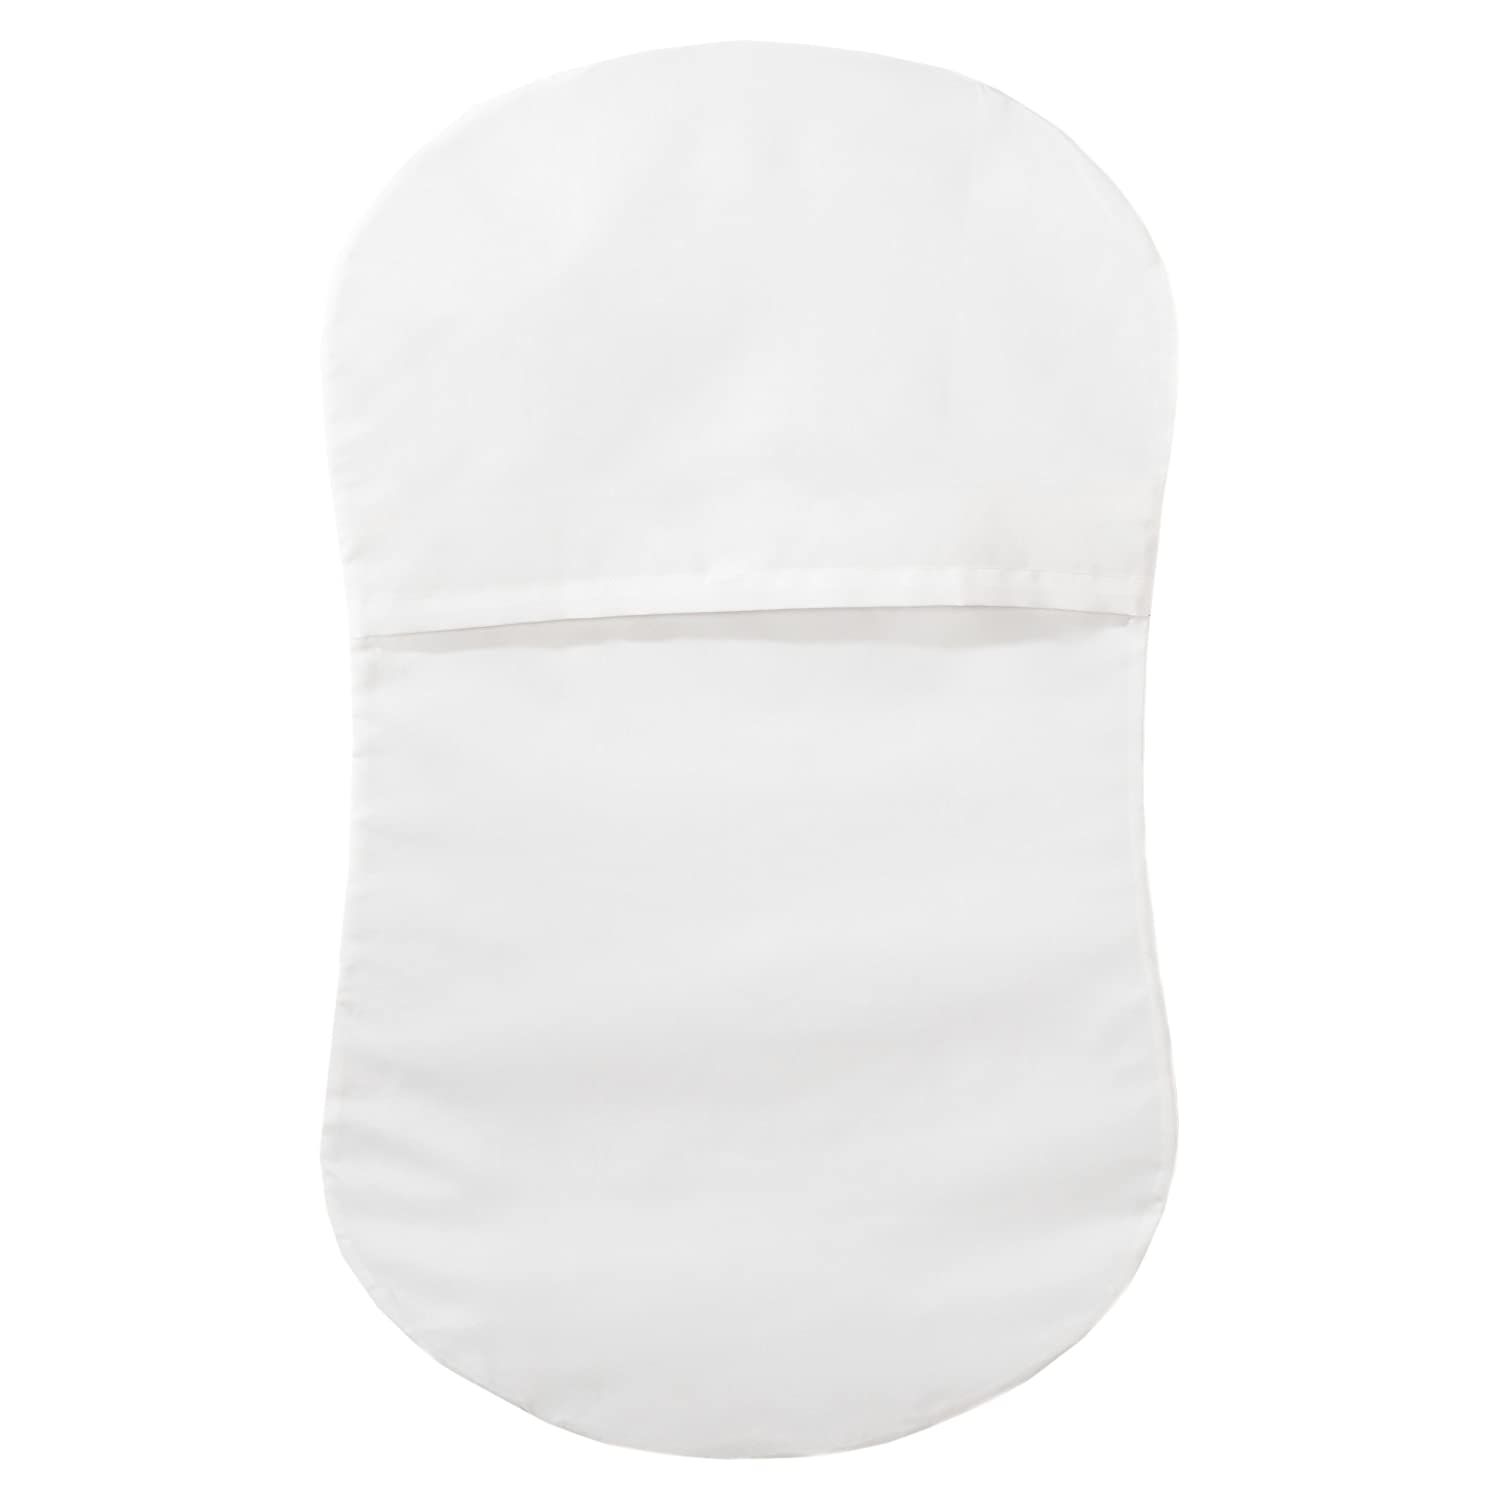 Halo Bassinest Swivel Sleeper Replacement mattress with Organic Cotton Cover